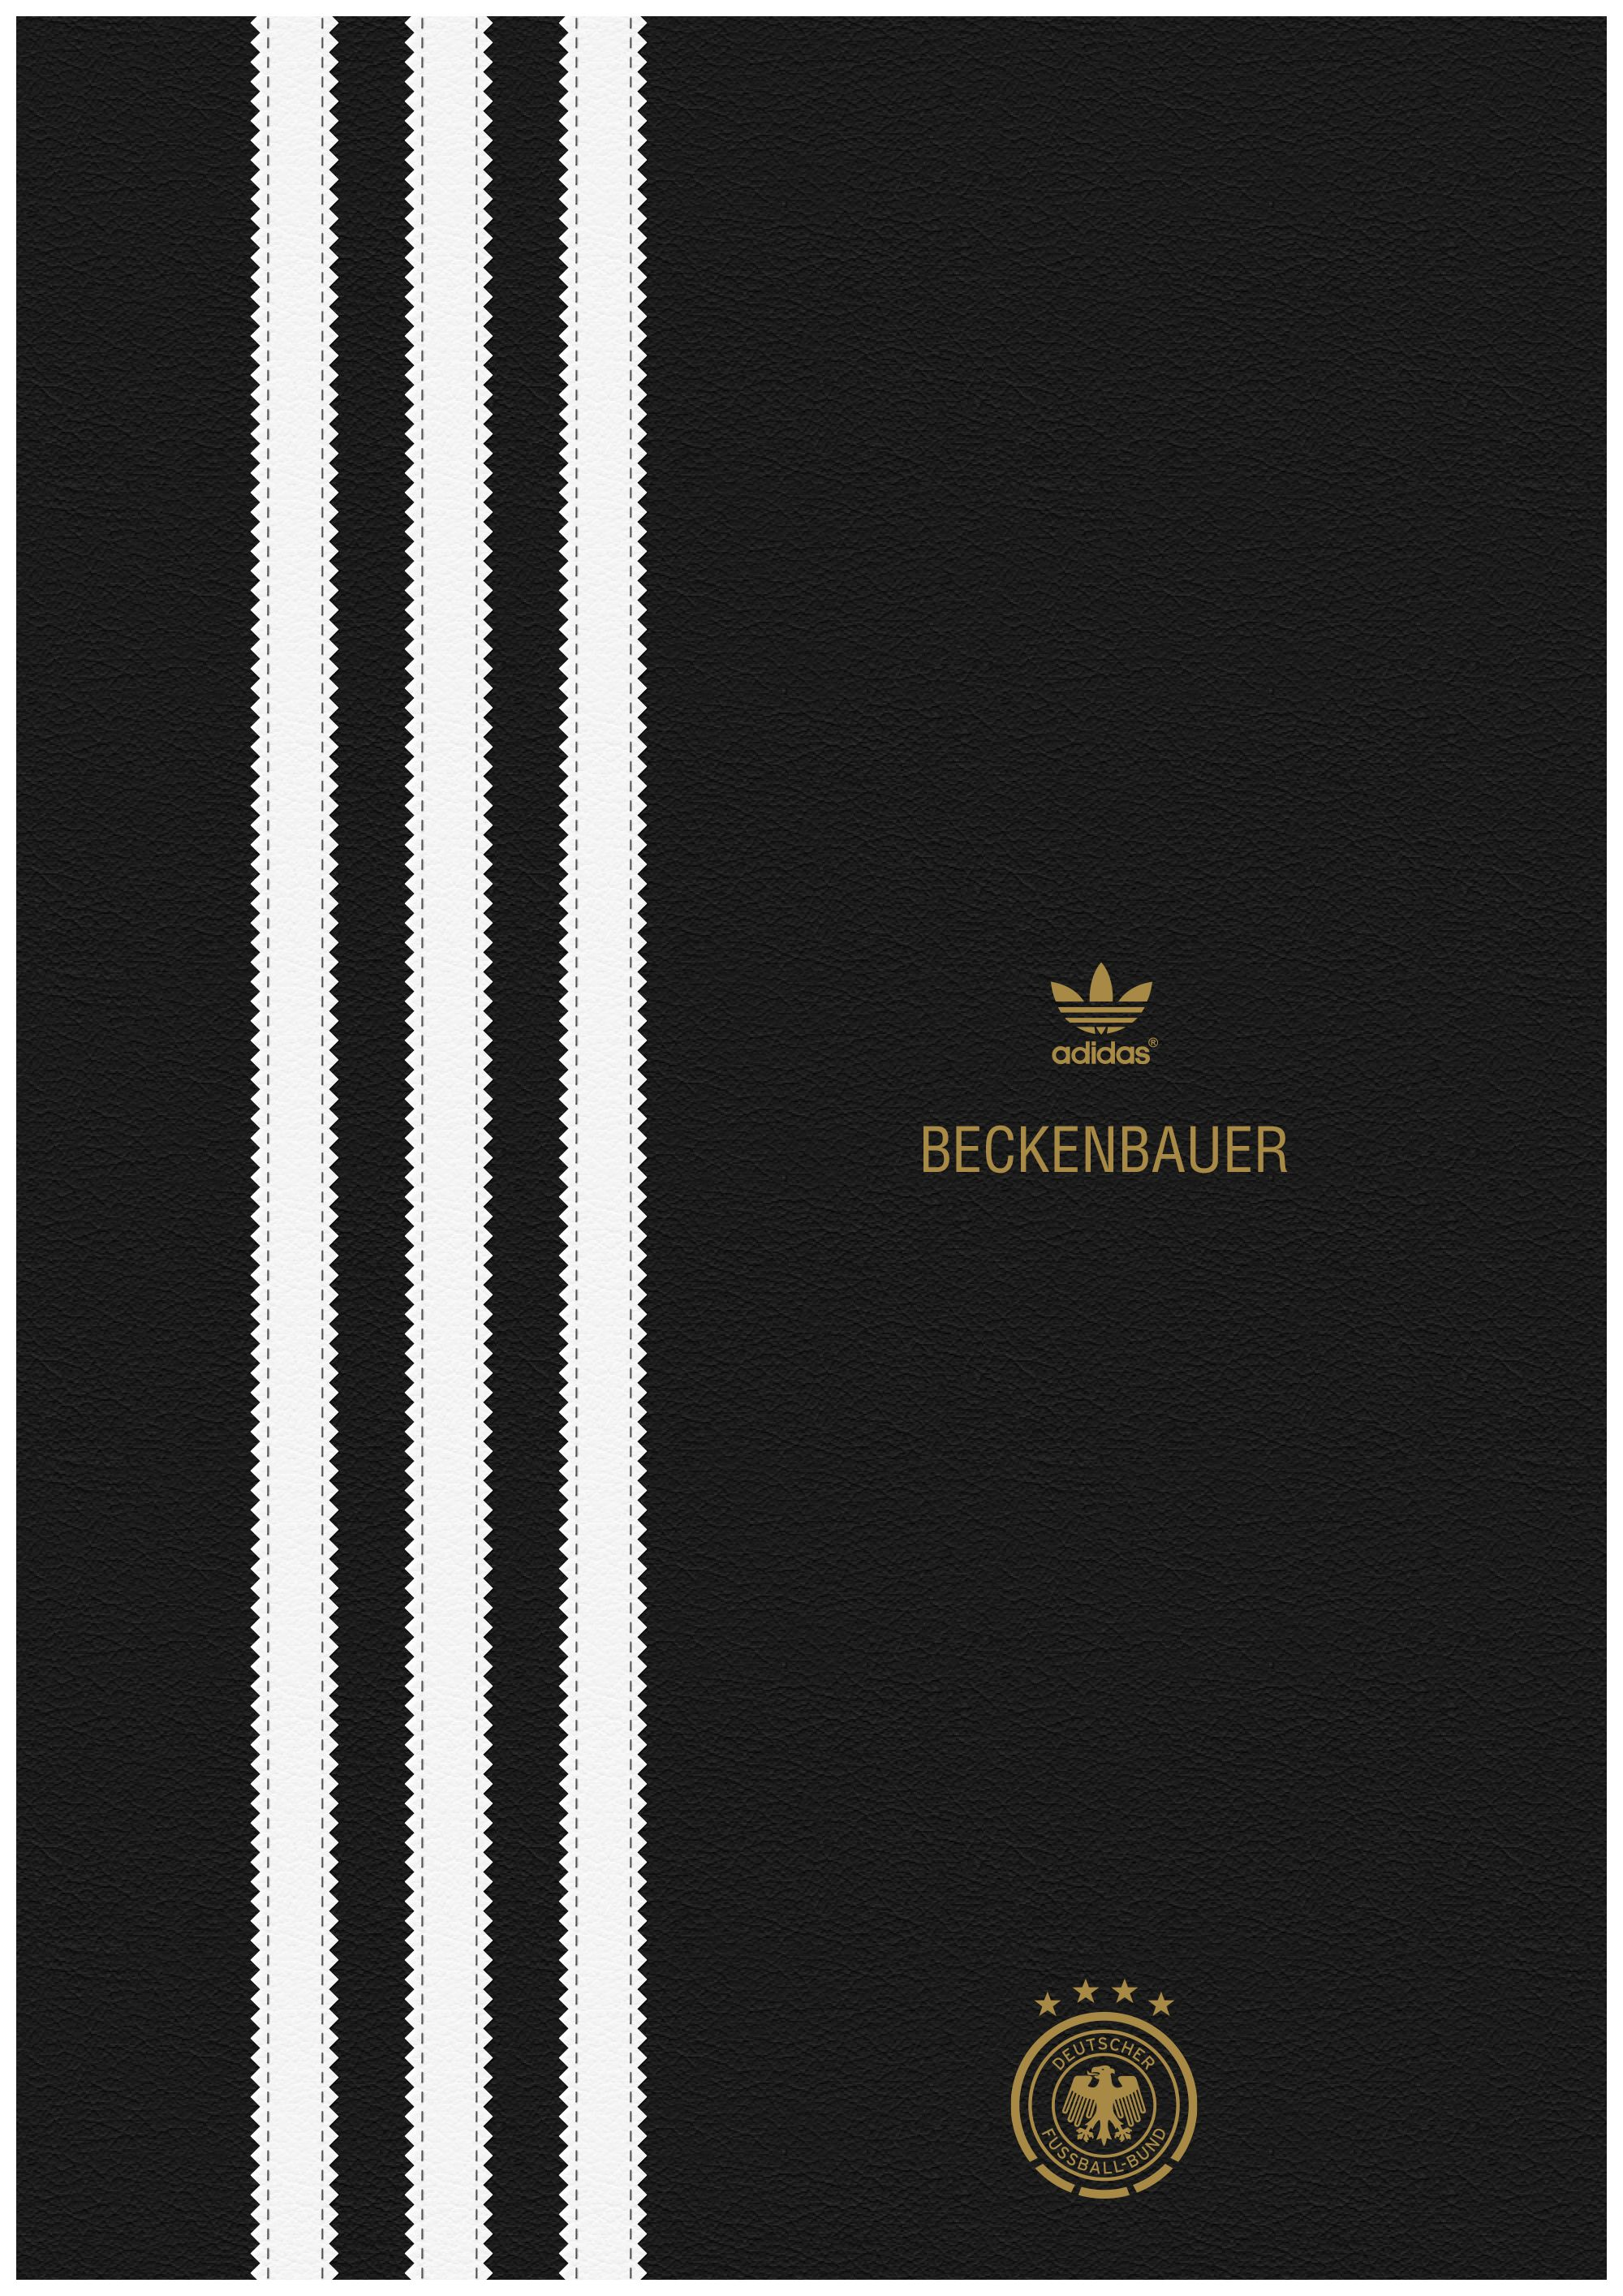 Going retro with one of the originals beckenbauer adidas allin going retro with one of the originals beckenbauer adidas allin ger buycottarizona Images